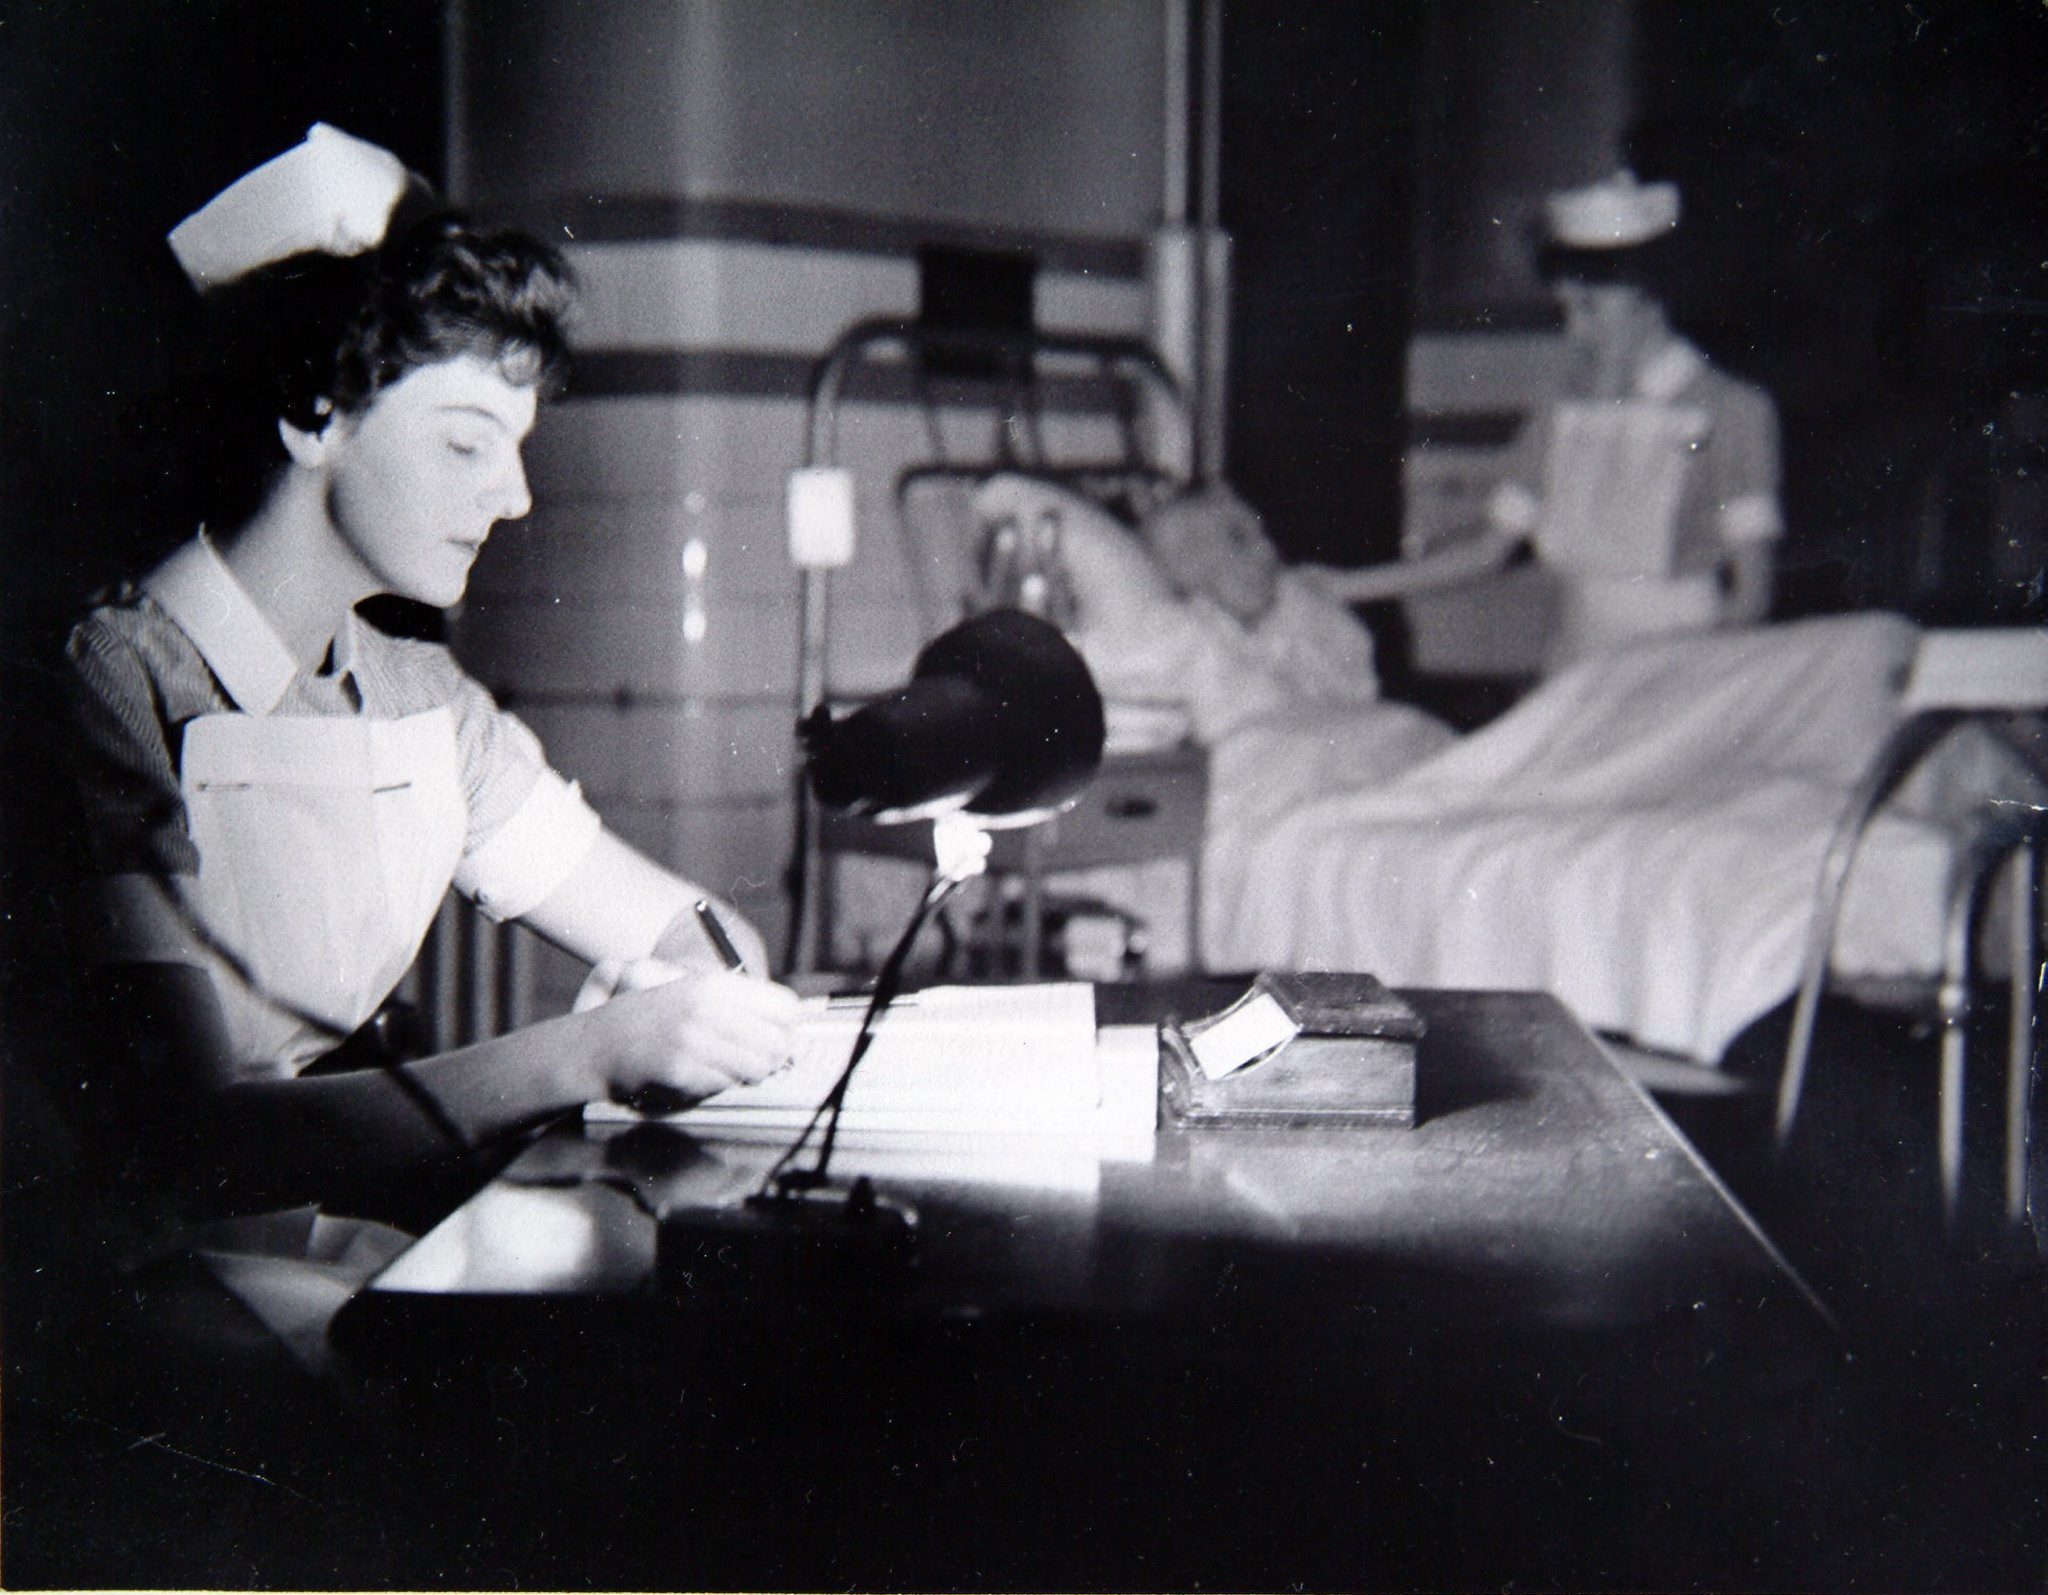 Glasgow Royal Infirmary. The ward lights are dimmed and the curtains drawn when the night duty nurses take over at 9pm. A young nurse sits at her desk checking over the day reports of the patients. In the background her colleague adjusts the pillows